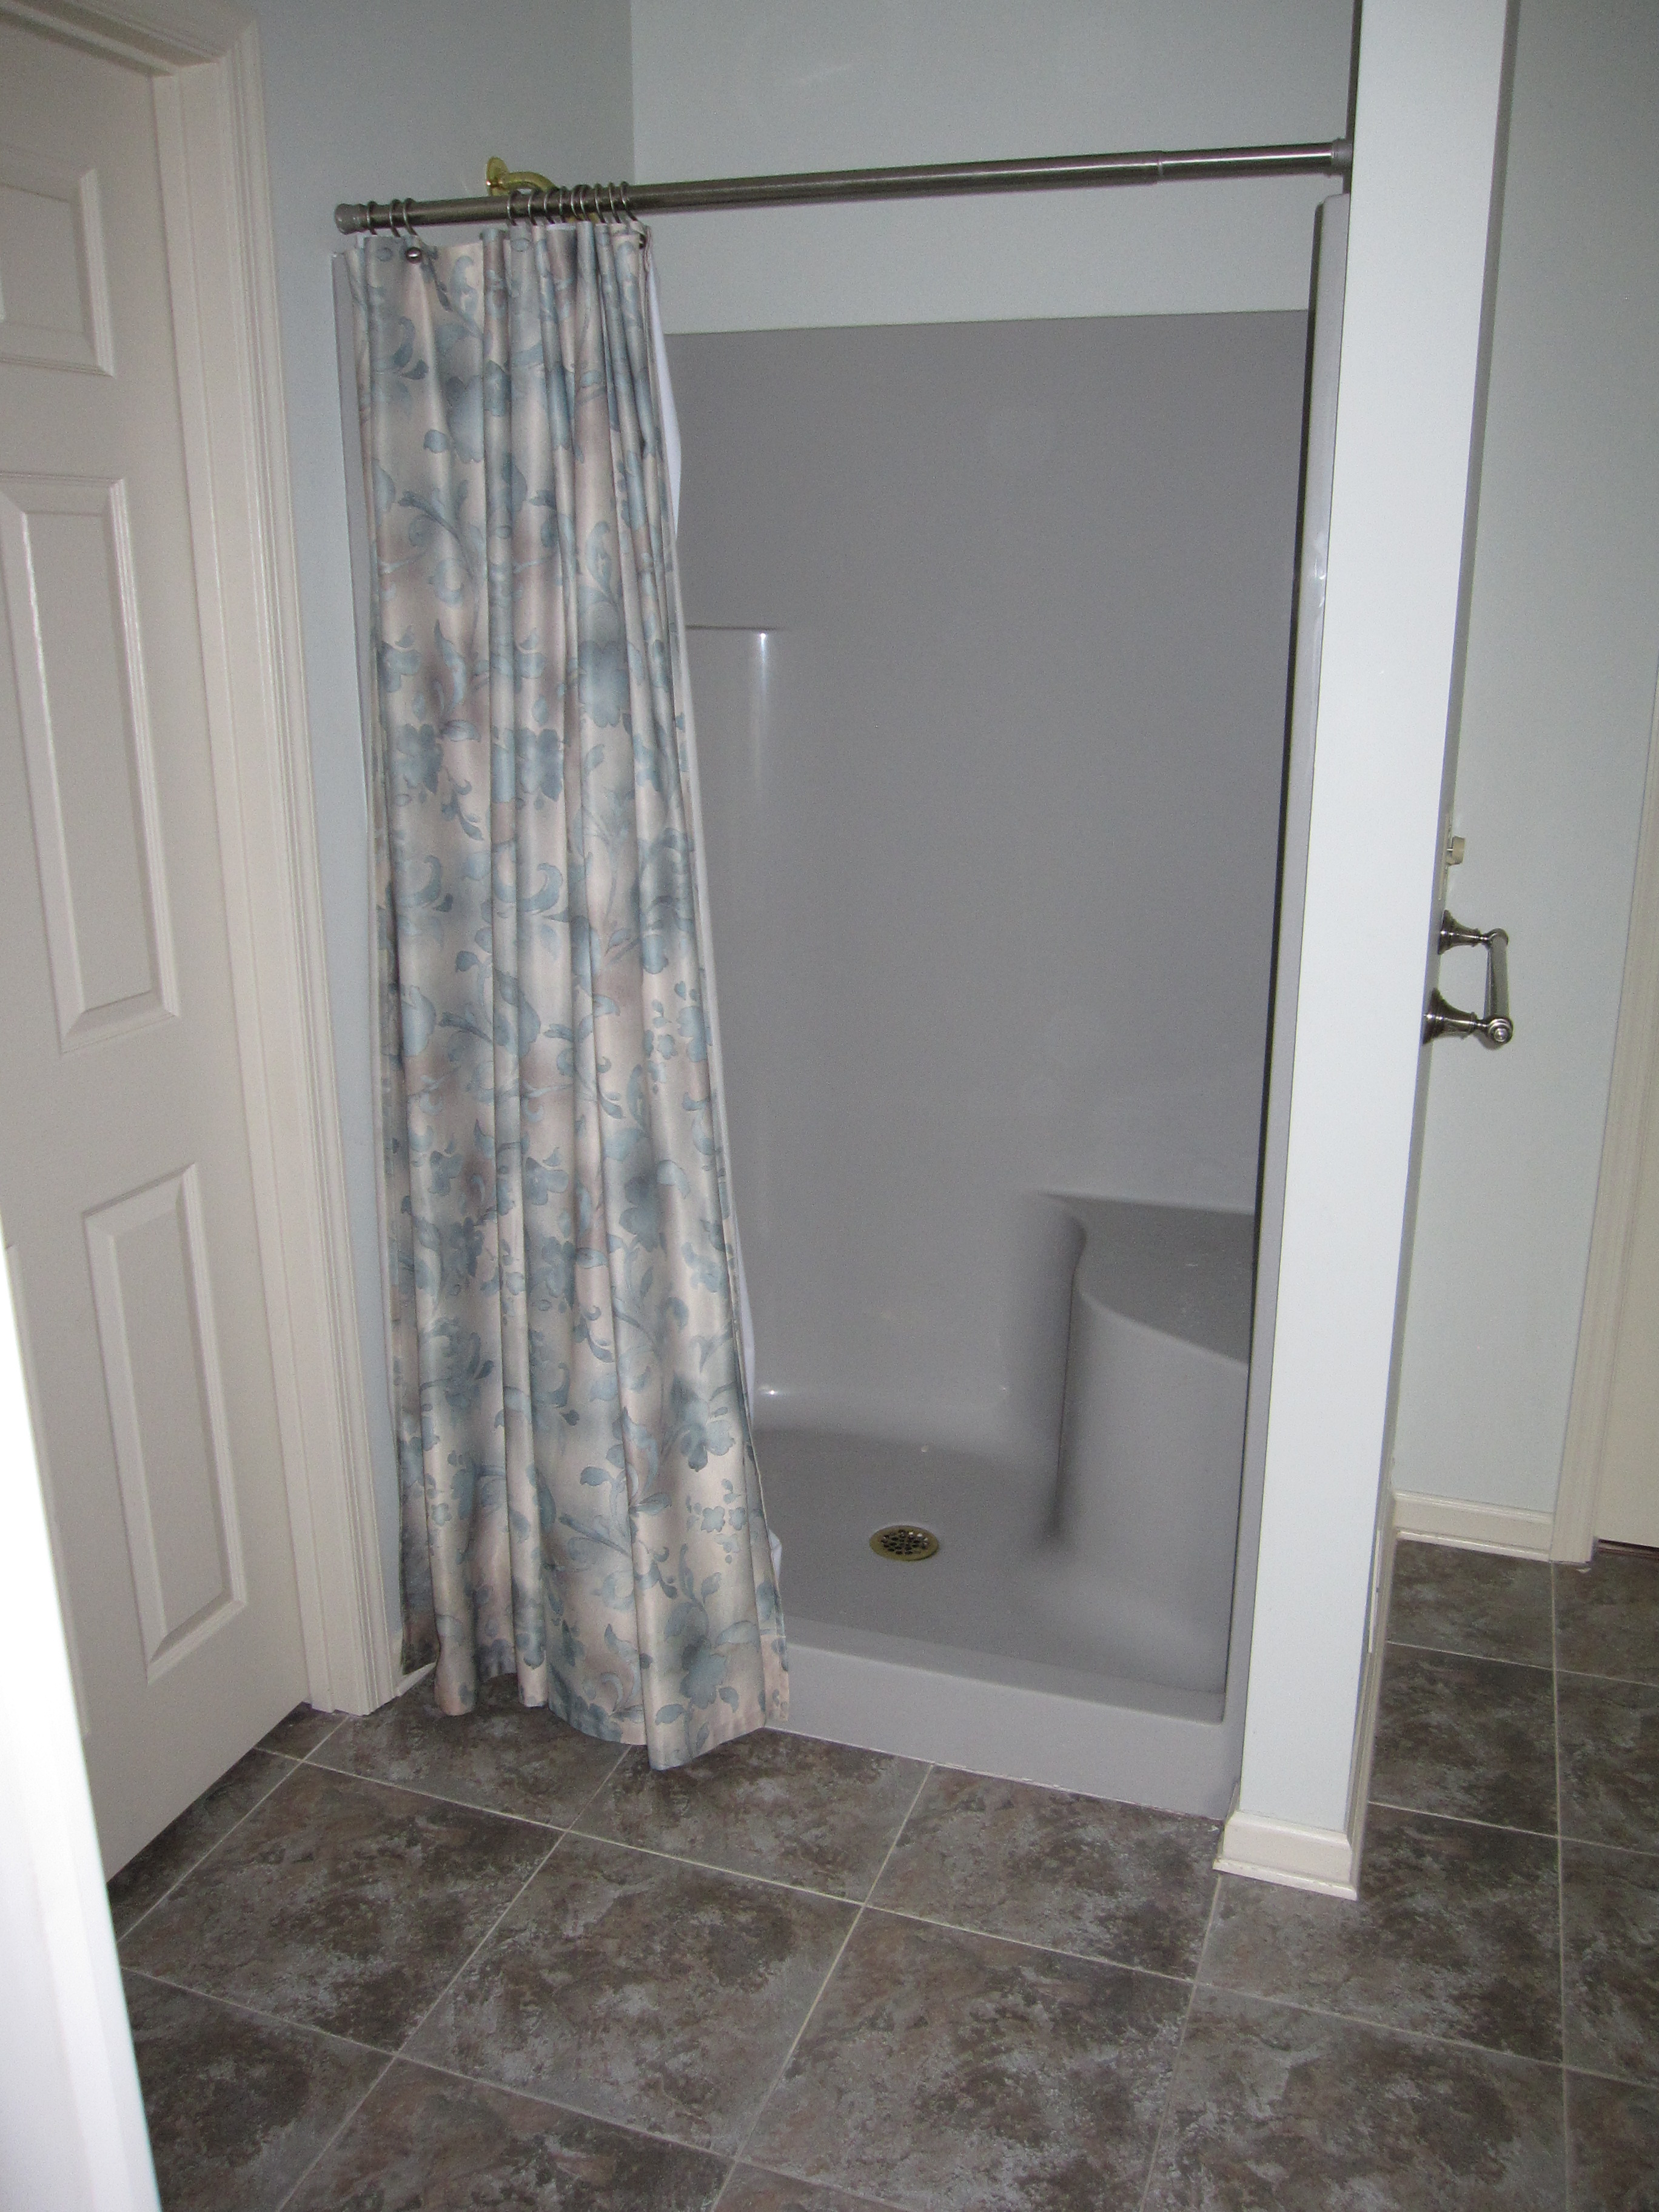 Bath Shower Fiberglass Stalls With Pattern Curtains And Regard To Sizing 2736 X 3648